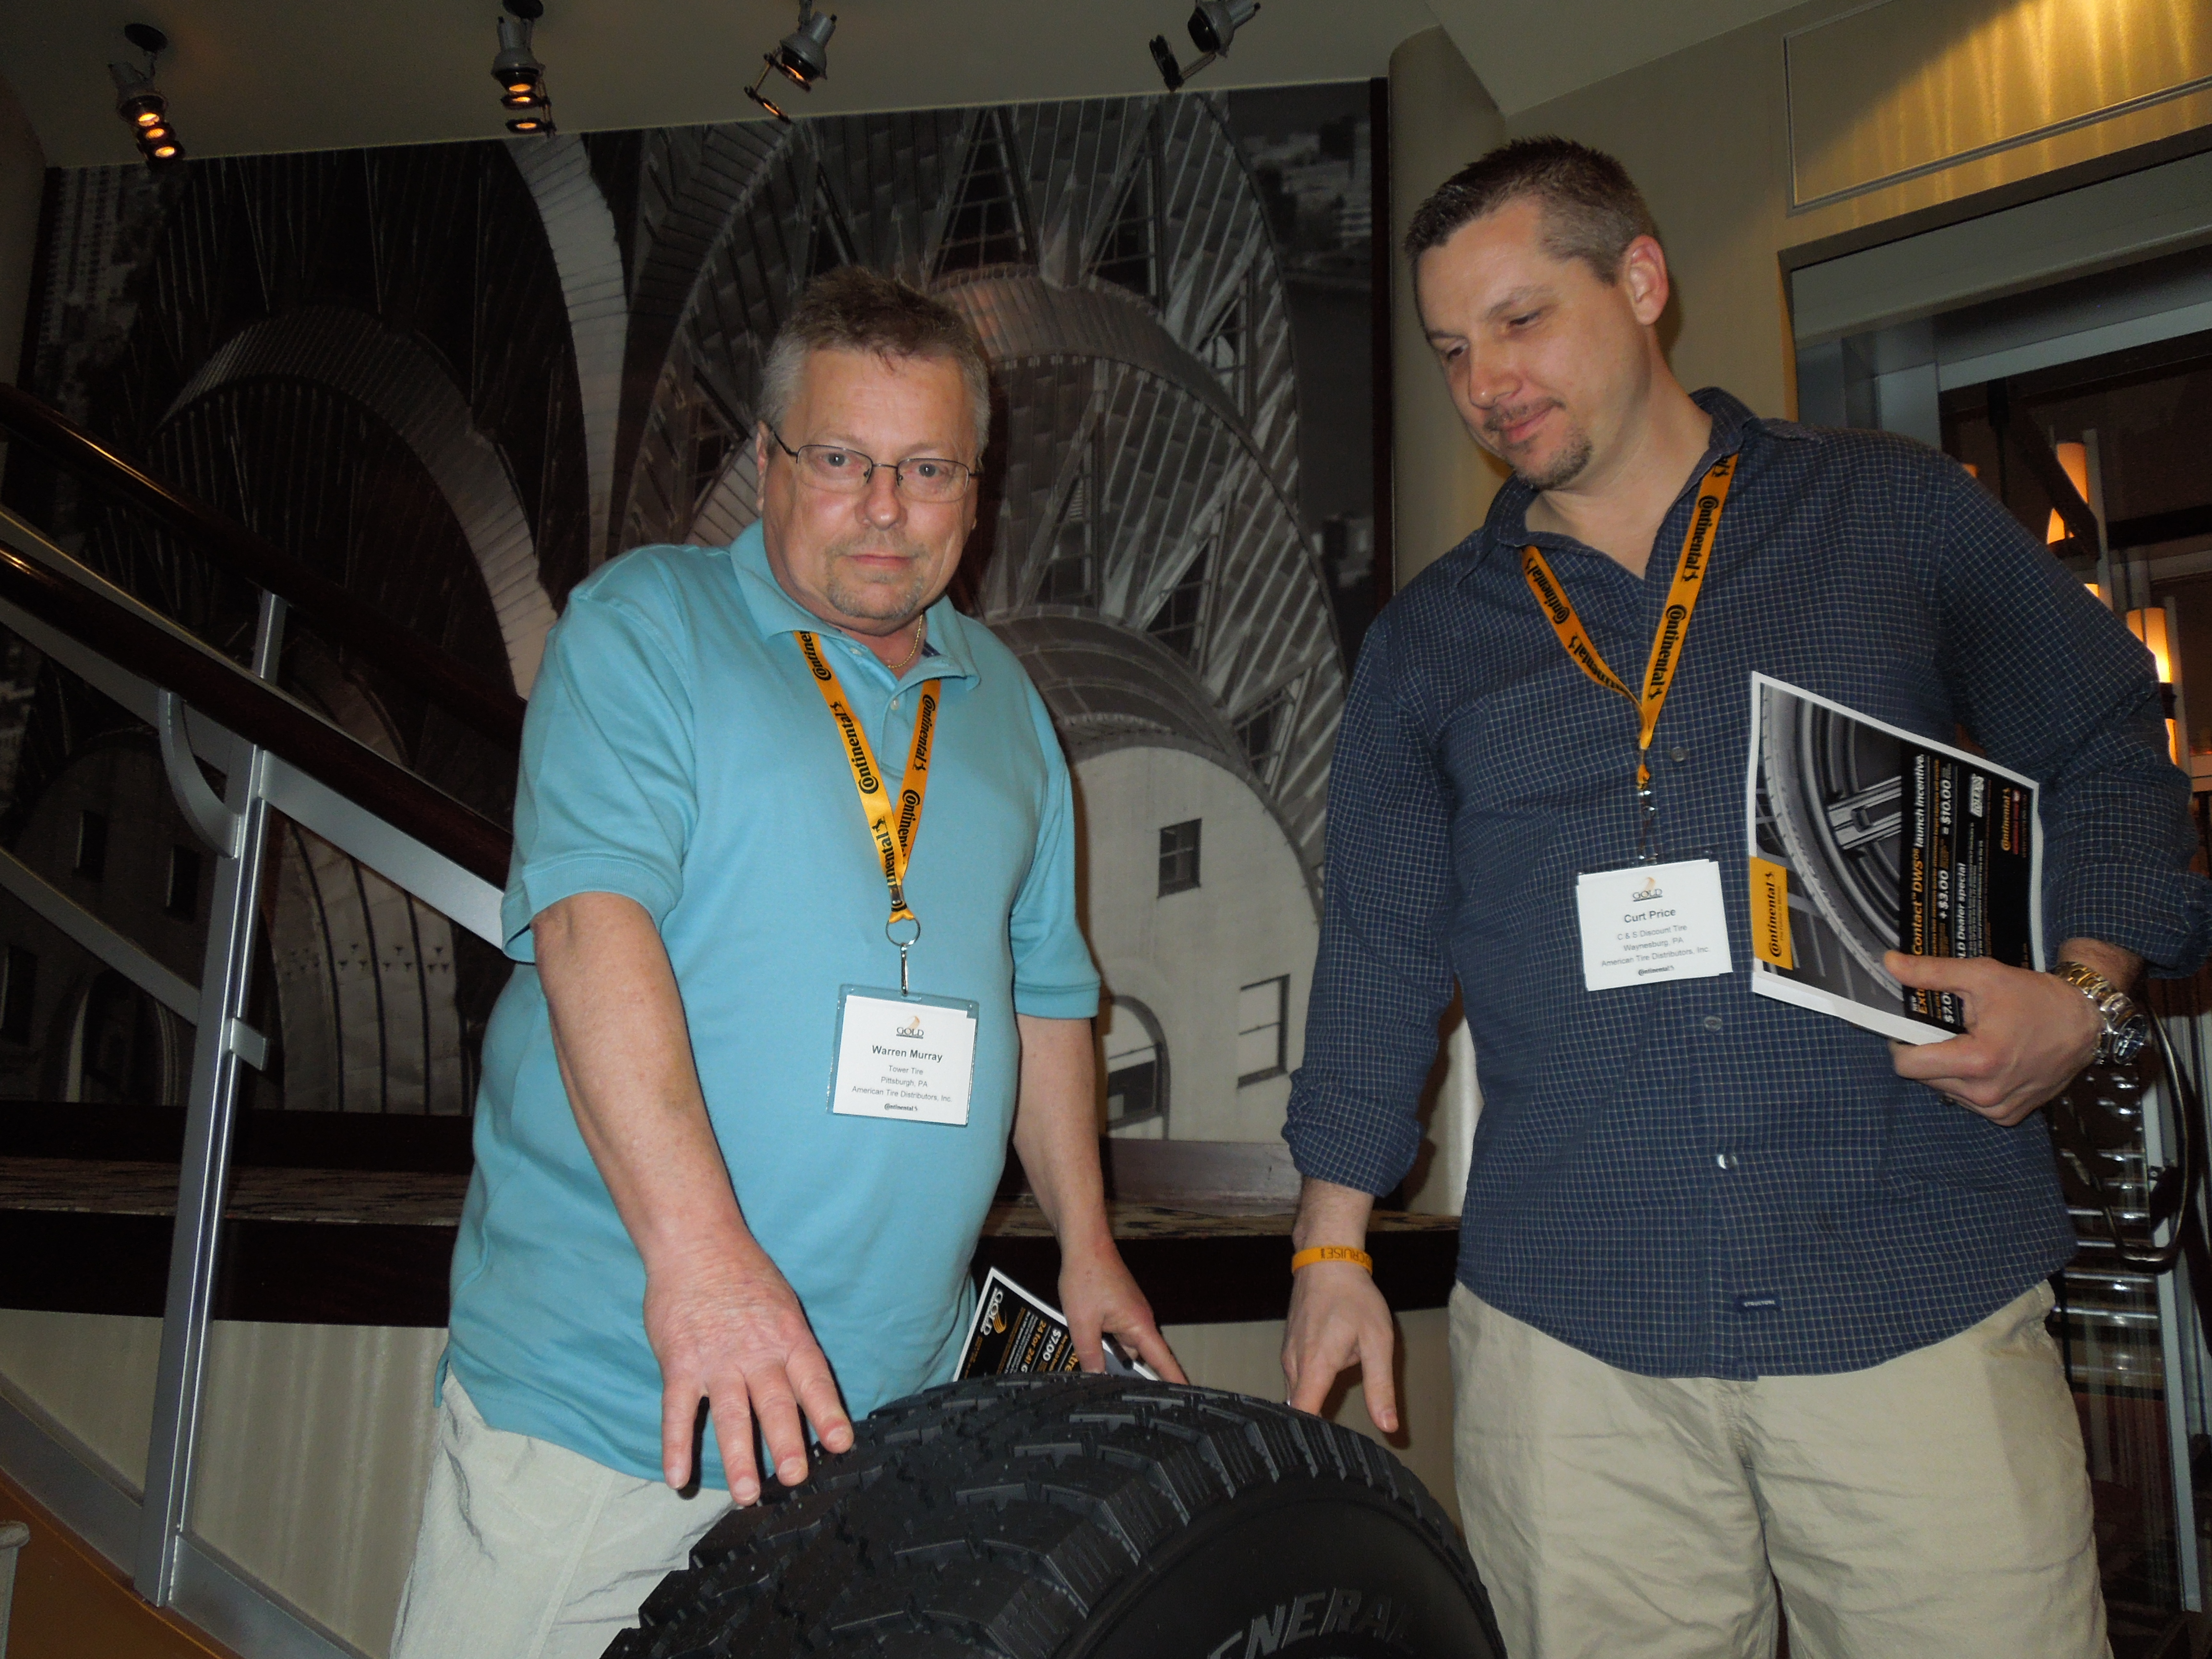 Continental reveals plans, products on dealer trip